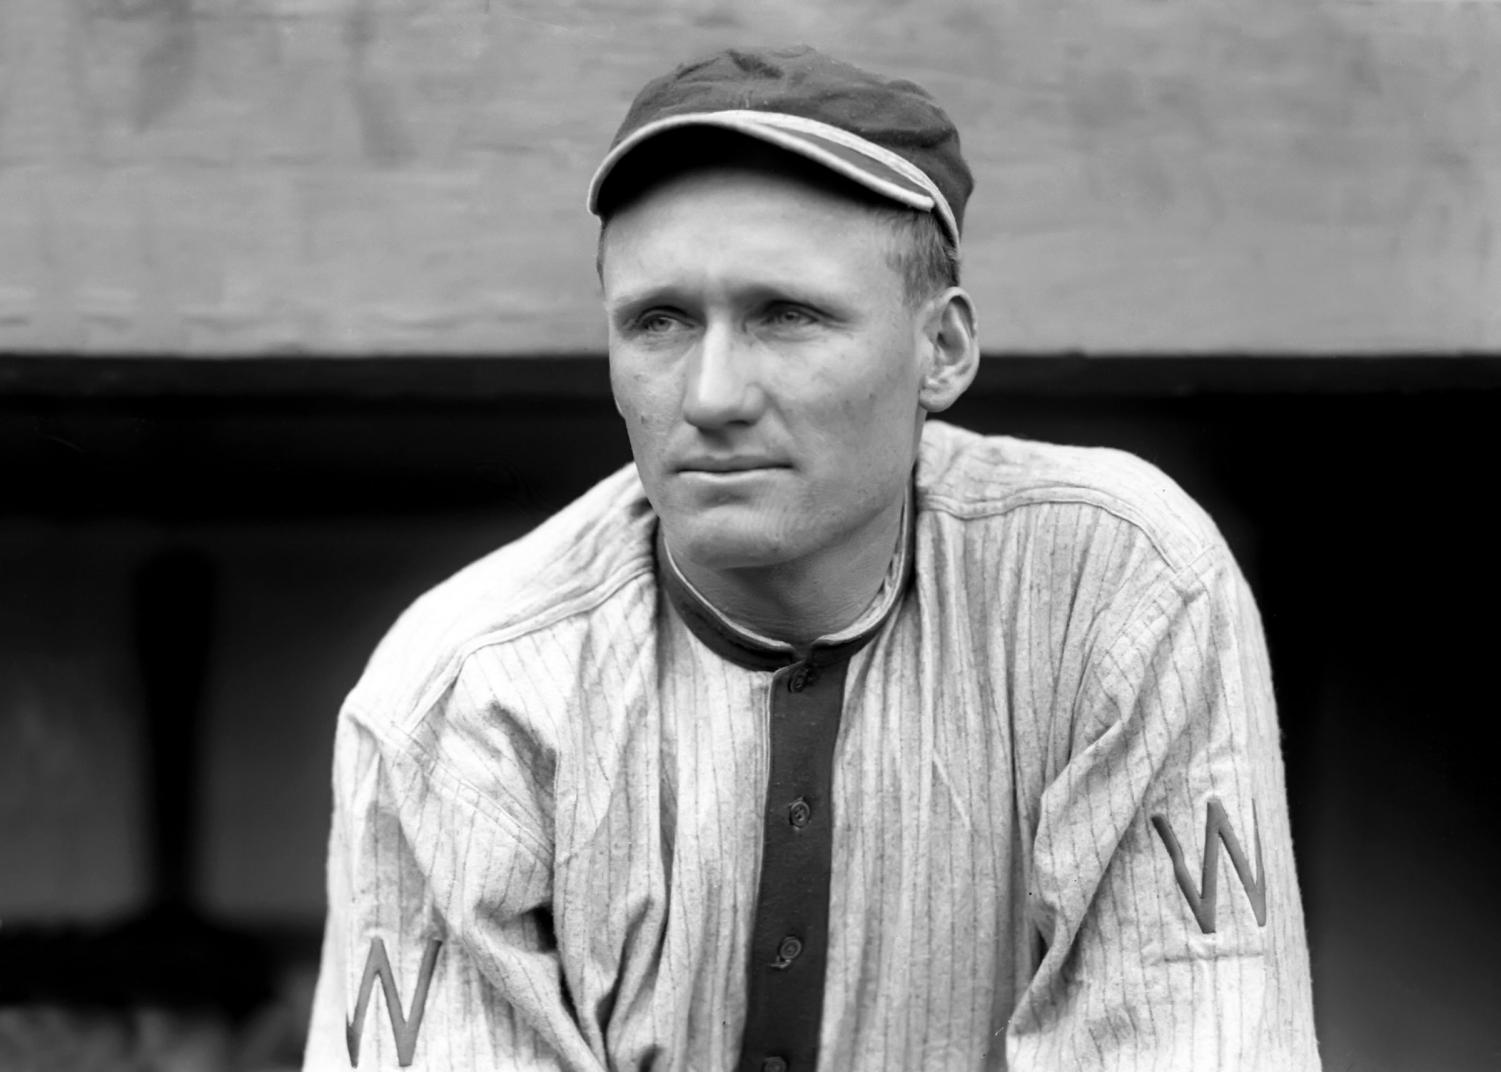 Walter Johnson looks onto the field during a game with the Washington Senators. After baseball, Johnson served on the Montgomery County Council and made a difference in the community.